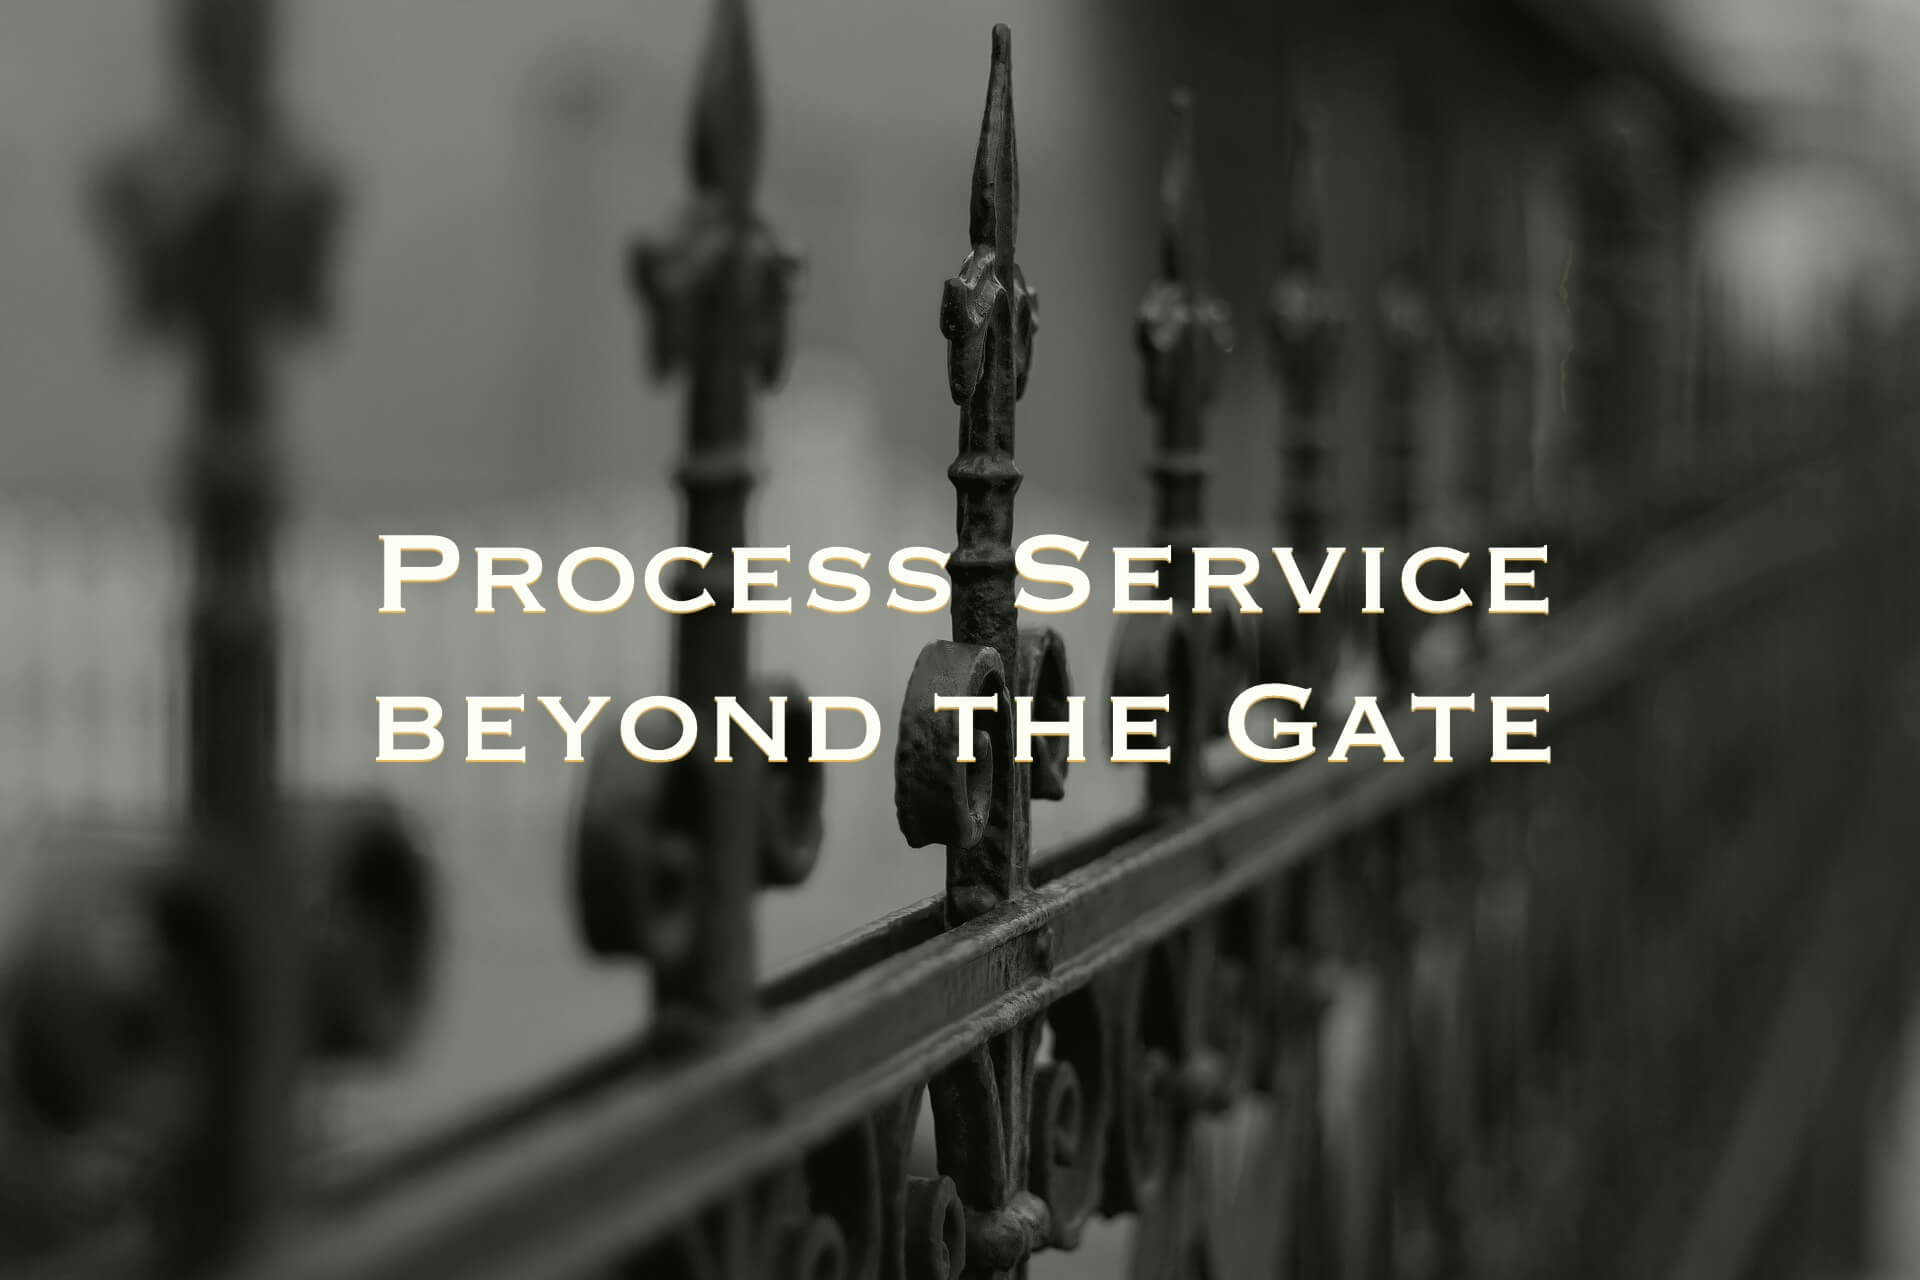 Process Service Beyond the Gate